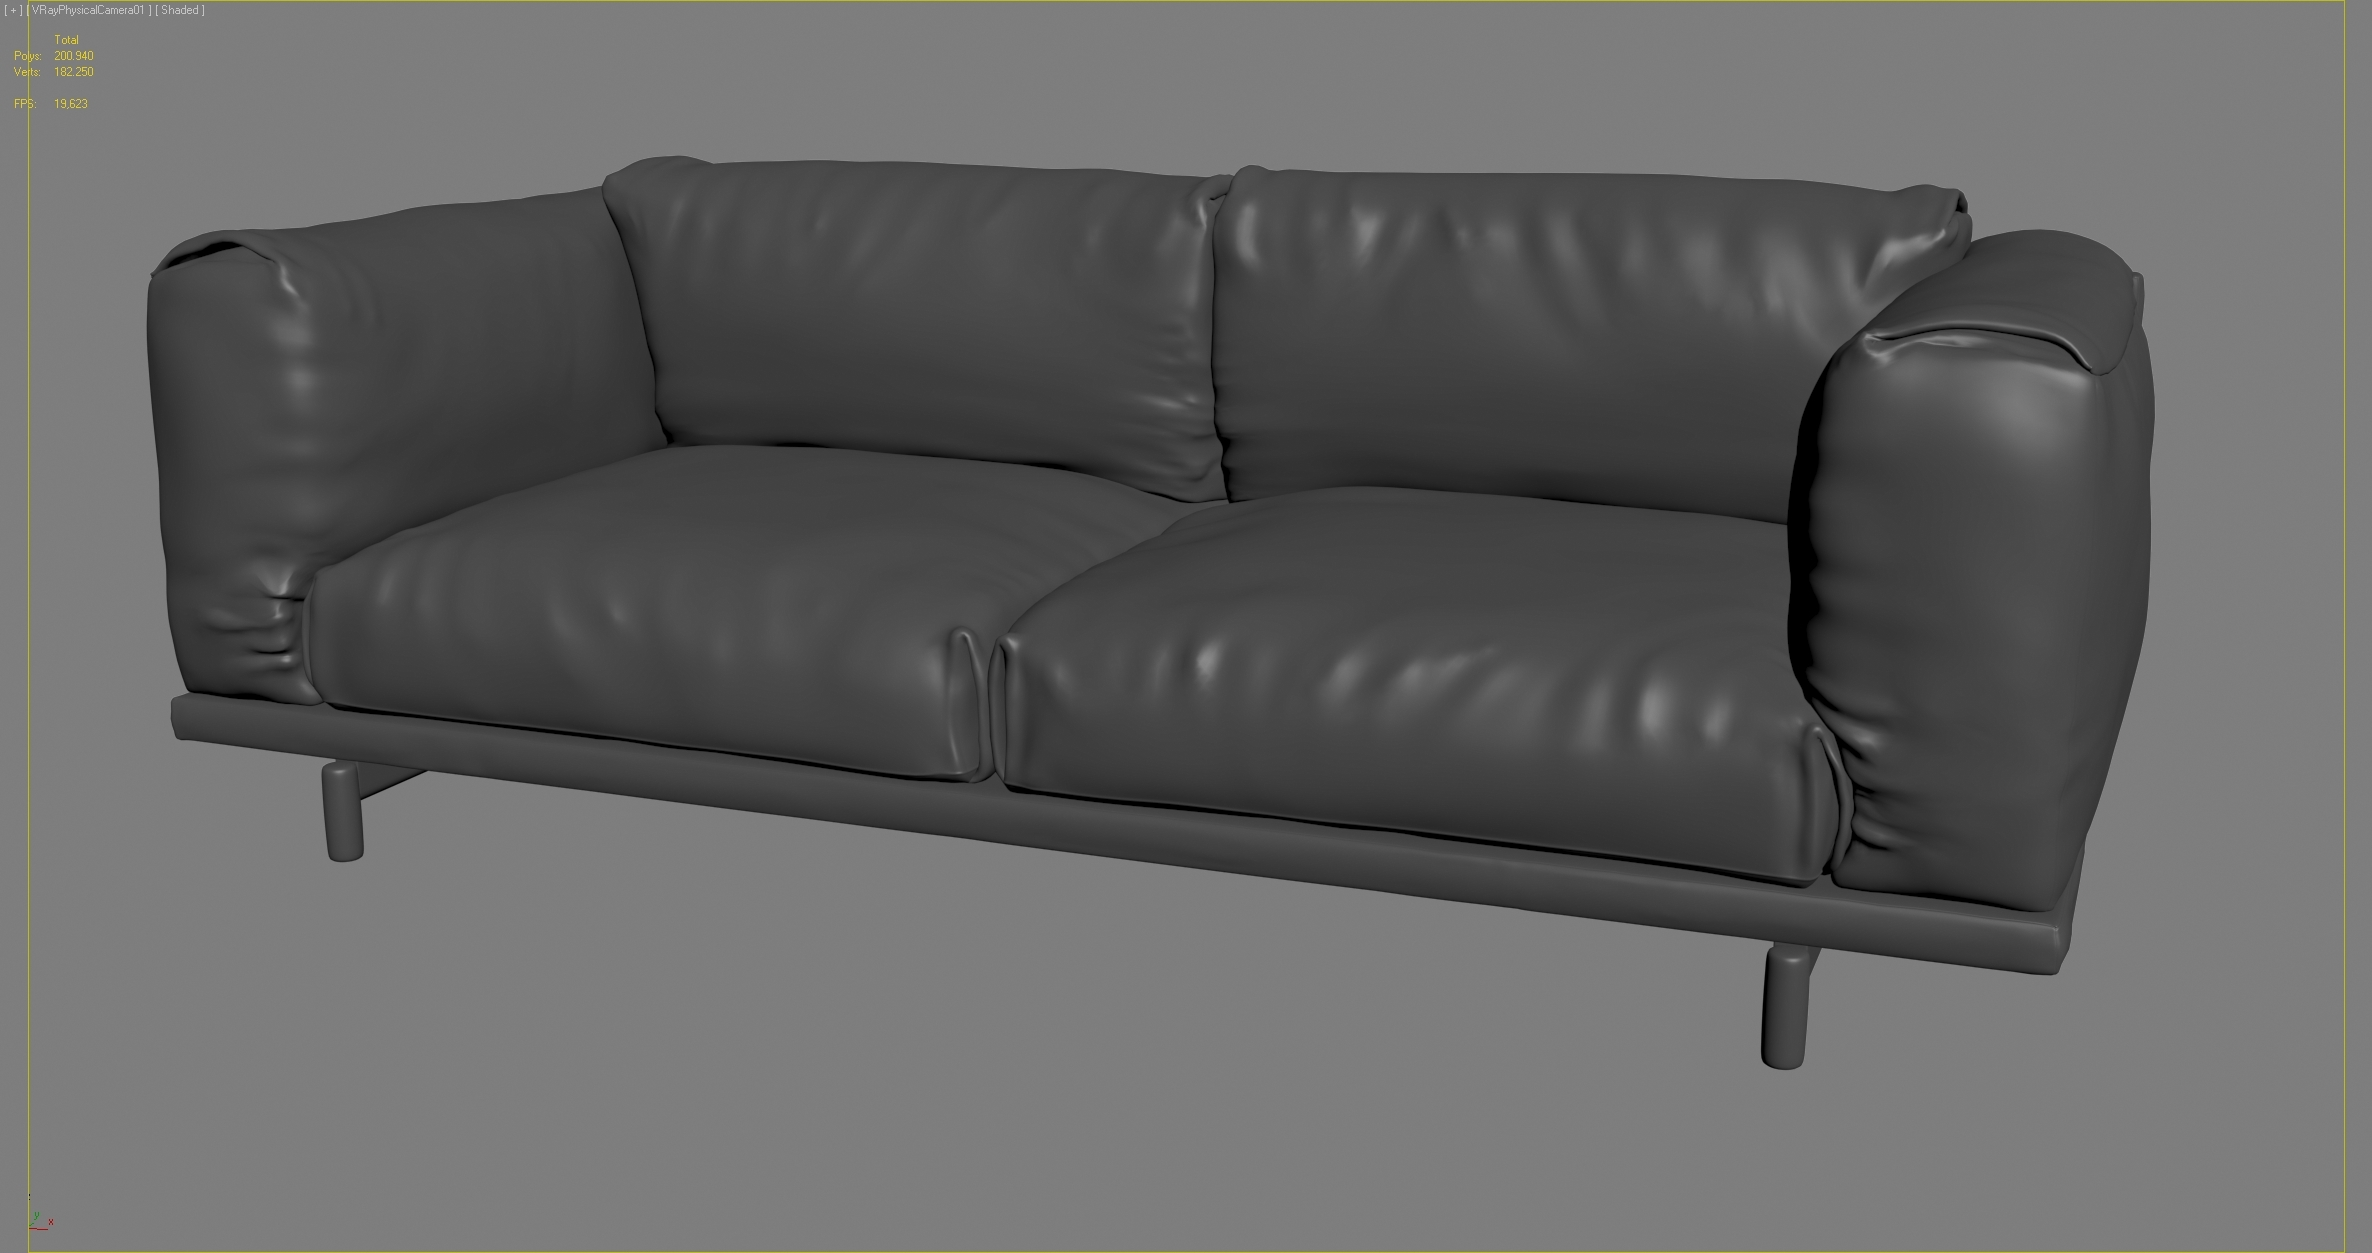 muuto rest sofa vray materials by cgstar 3docean. Black Bedroom Furniture Sets. Home Design Ideas